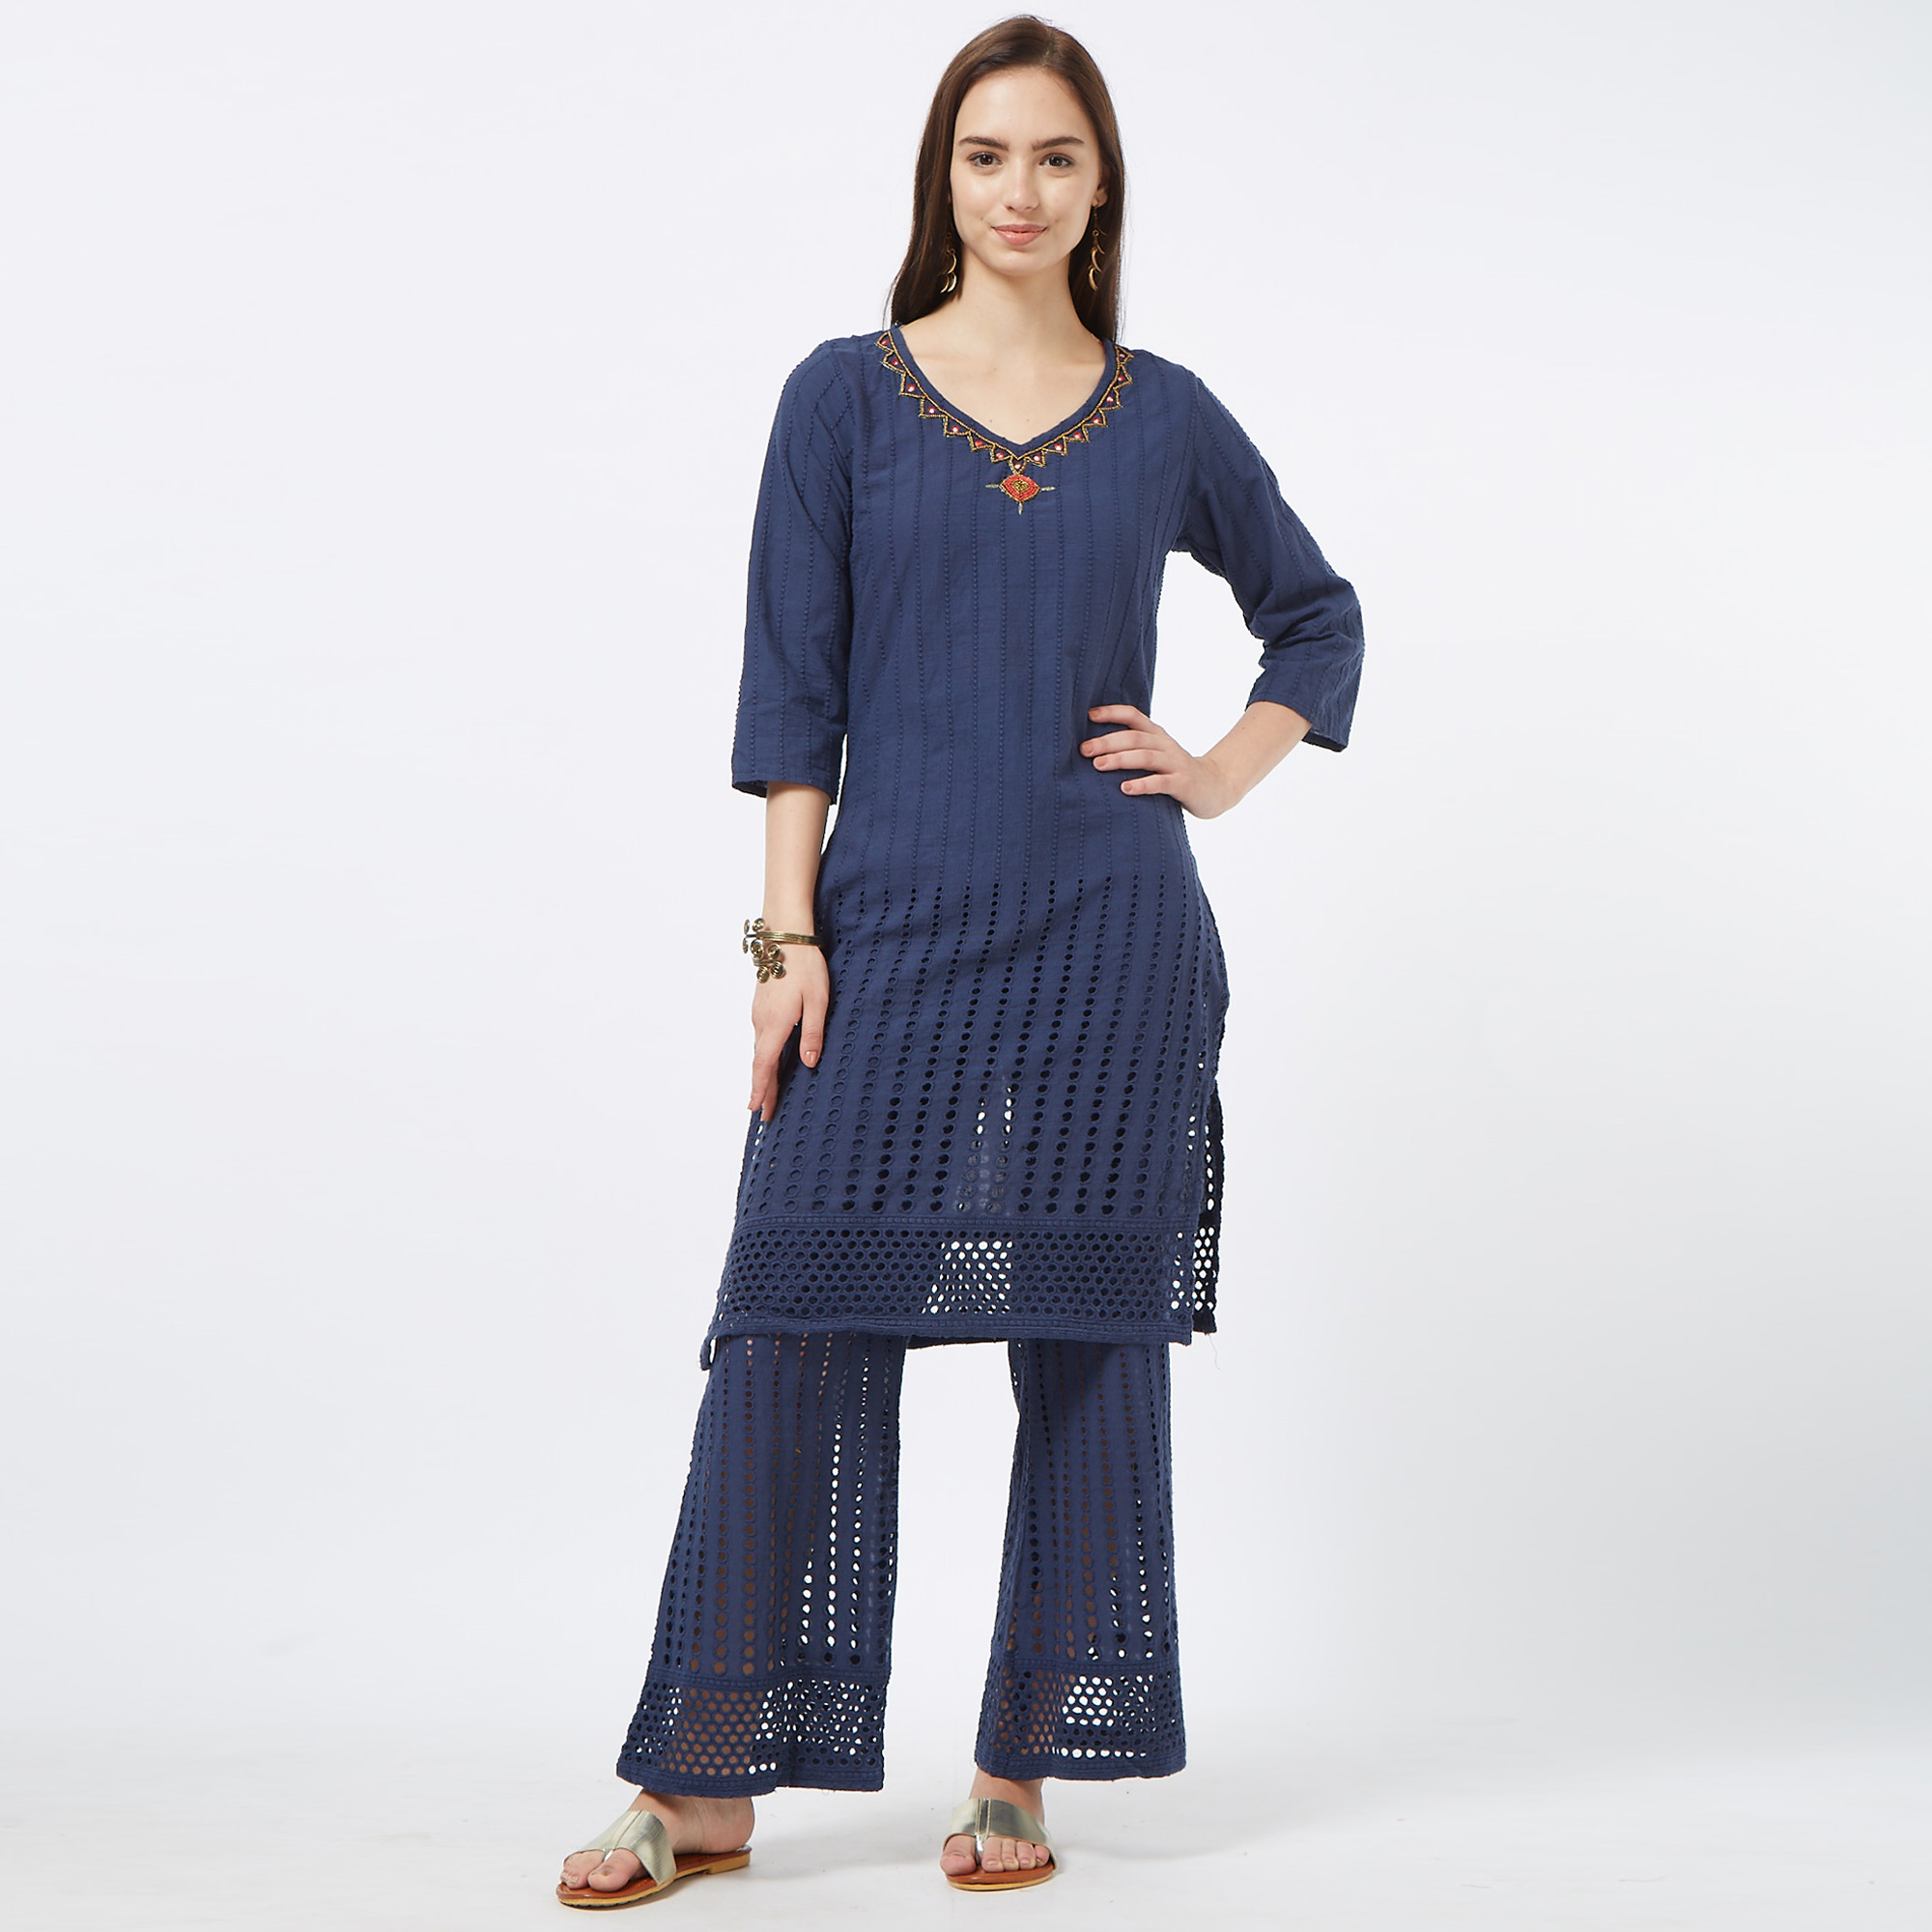 Groovy Navy Blue Colored Partywear Embroidered Cotton Palazzo Suit